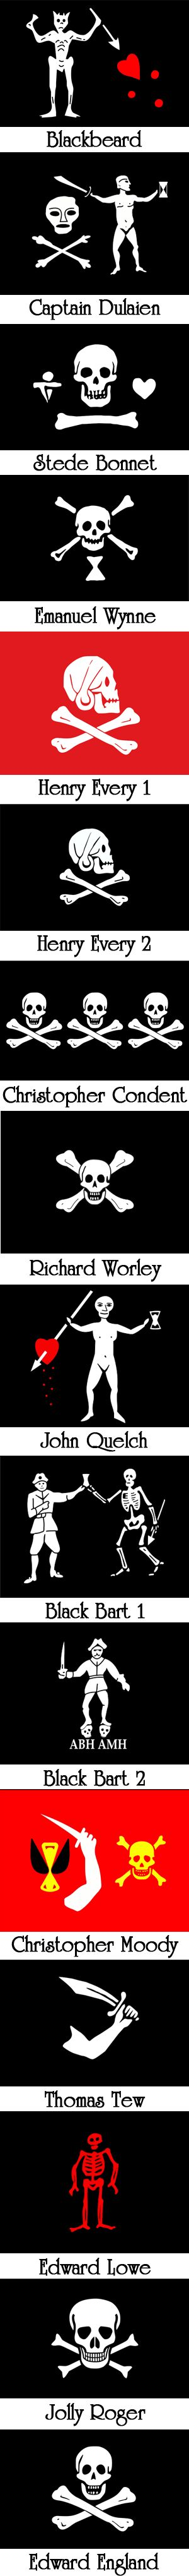 Famous Pirate Flags | Pirate Flags. Black Bart Roberts' flag with ABH and AMH meaning A Barbadian's Head and A Martinican's Head - because they sent out ships to try to catch him. GENTLEMAN OF FORTUNE The Adventures of Bartholomew Roberts, Pirate. www.evelyntidmanauthor.com